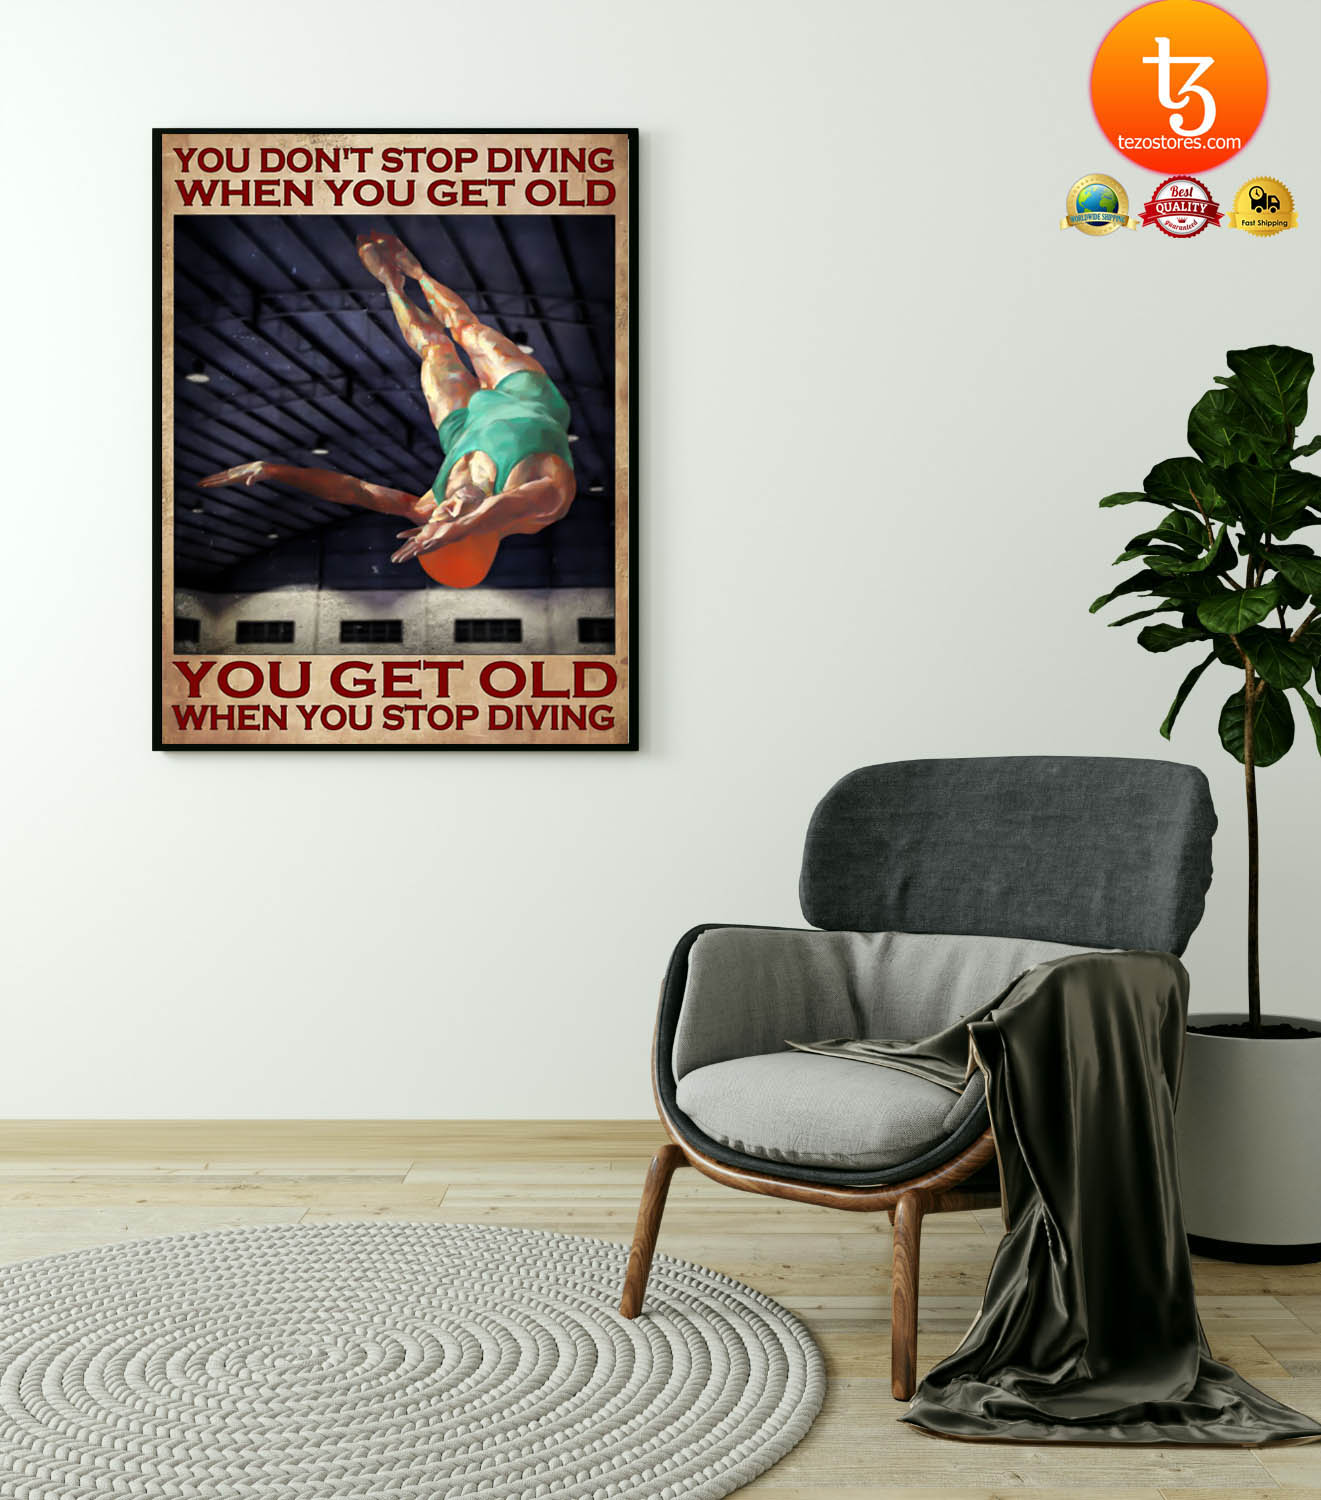 You don't stop diving when you get old poster 19